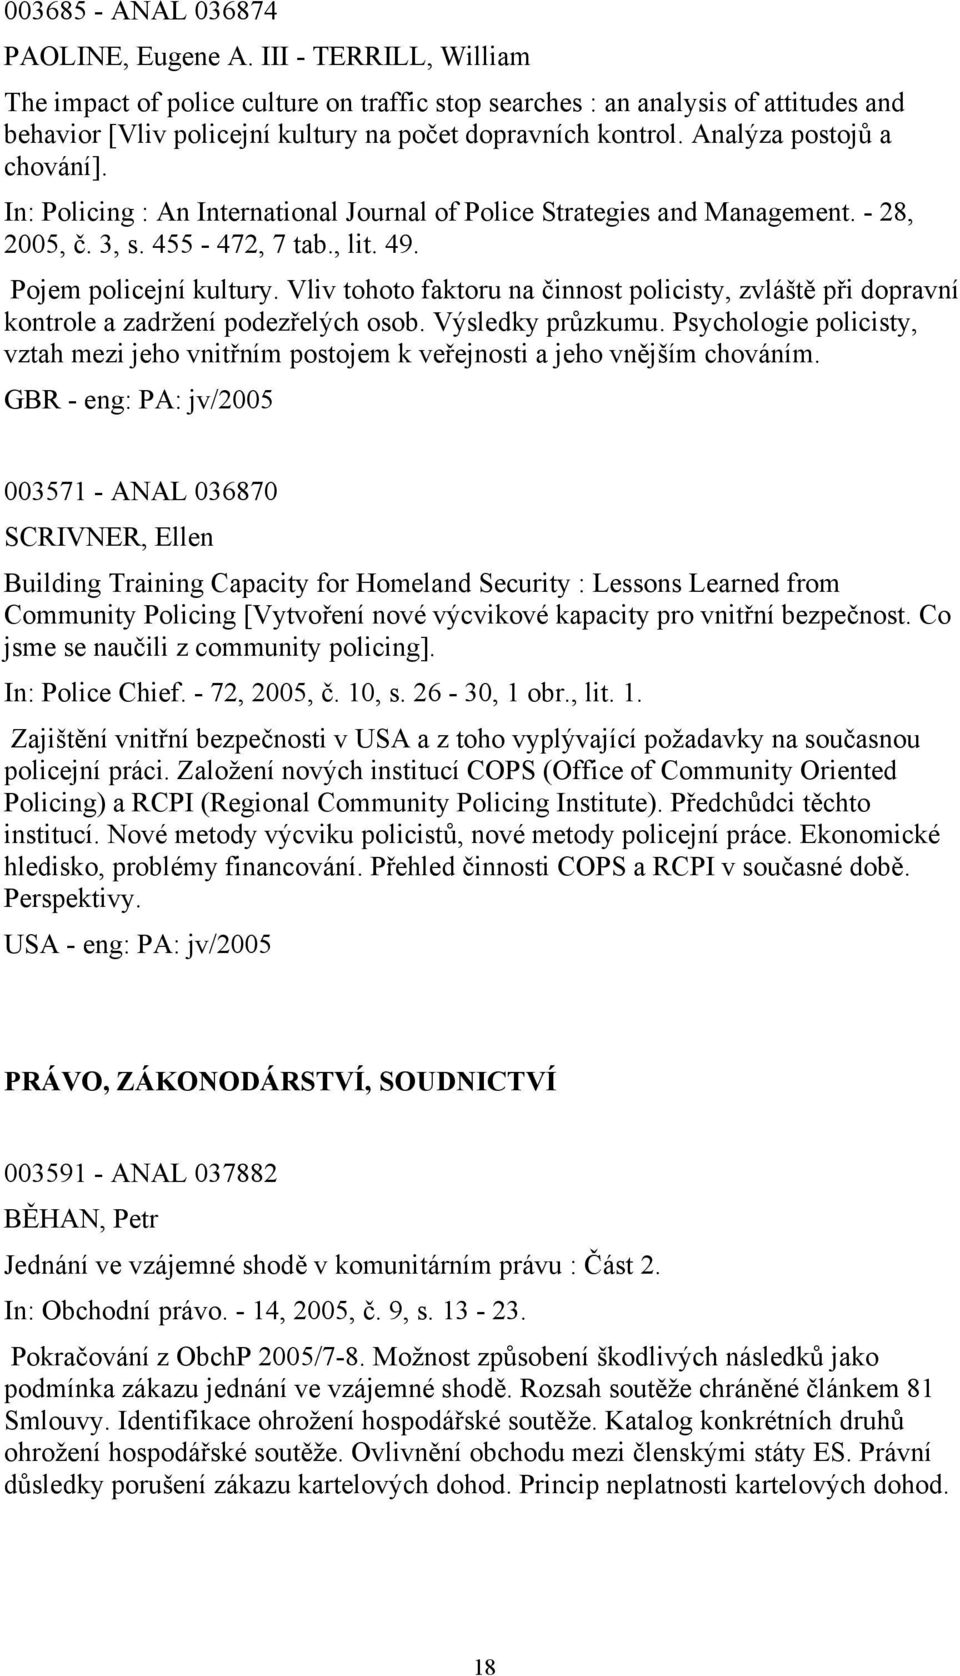 In: Policing : An International Journal of Police Strategies and Management. - 28, 2005, č. 3, s. 455-472, 7 tab., lit. 49. Pojem policejní kultury.